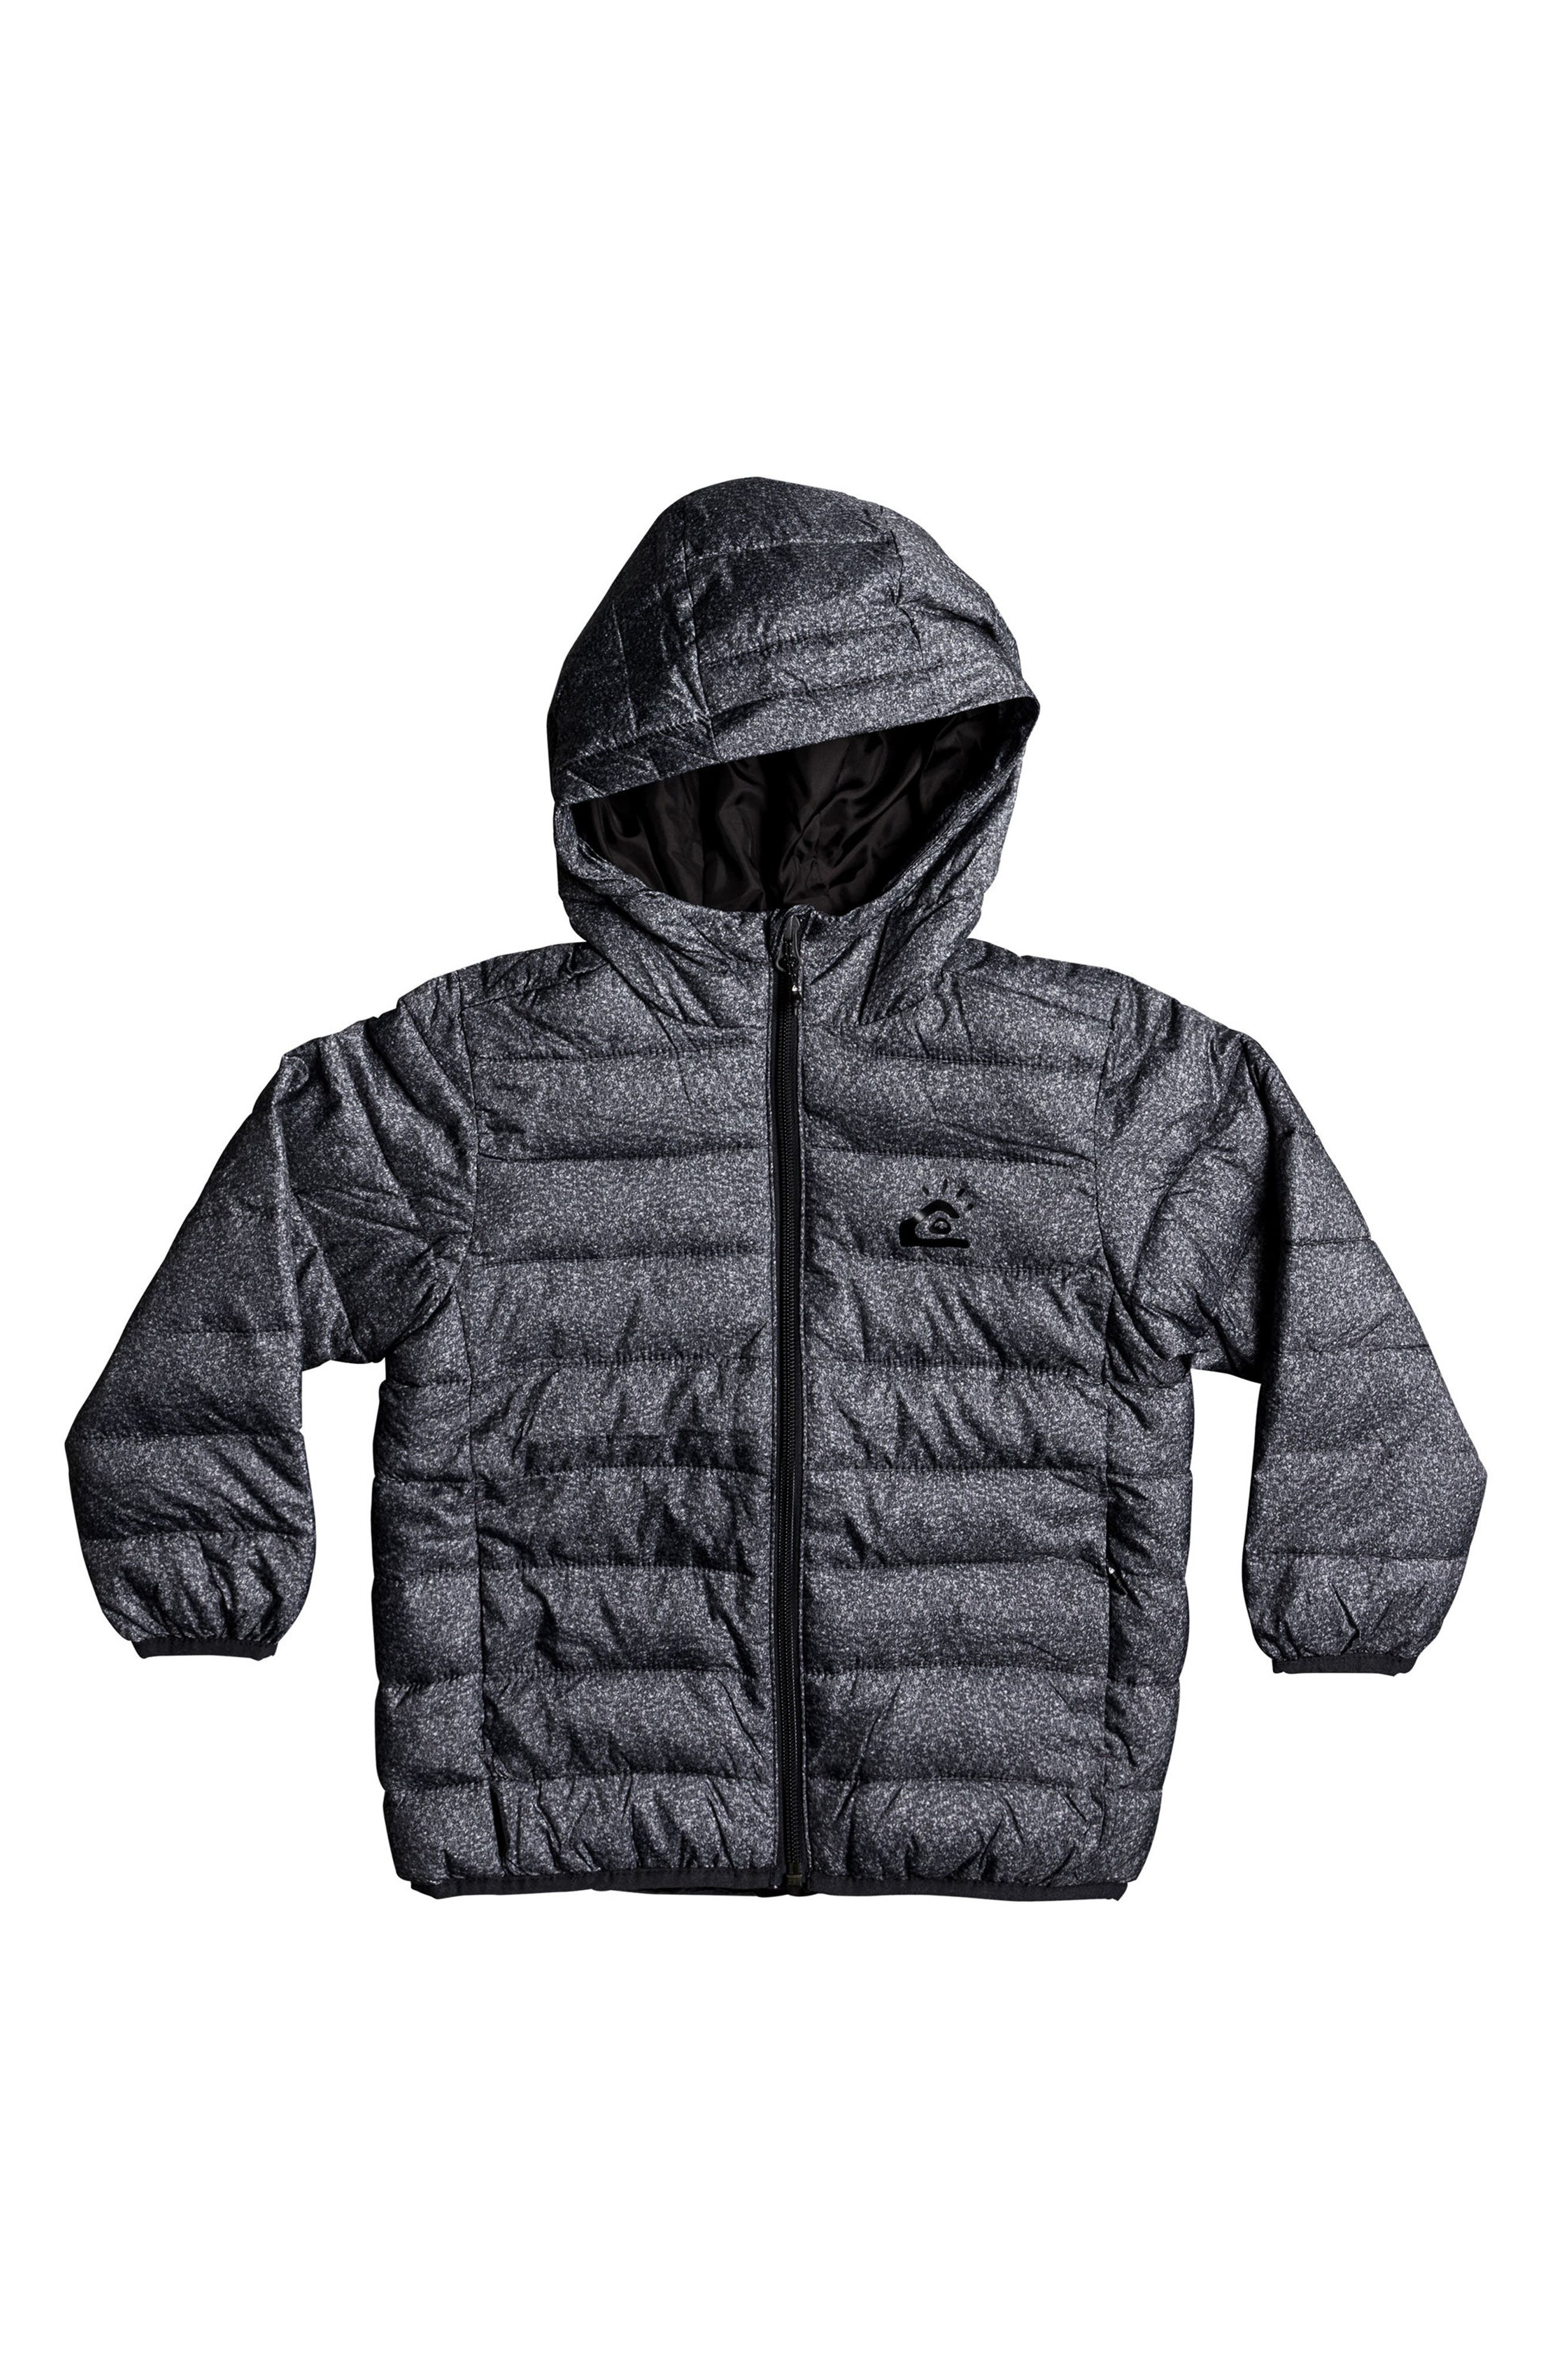 Quicksilver Scaly Water-Resistant Hooded Puffer Jacket,                             Main thumbnail 1, color,                             Dark Grey Scaly